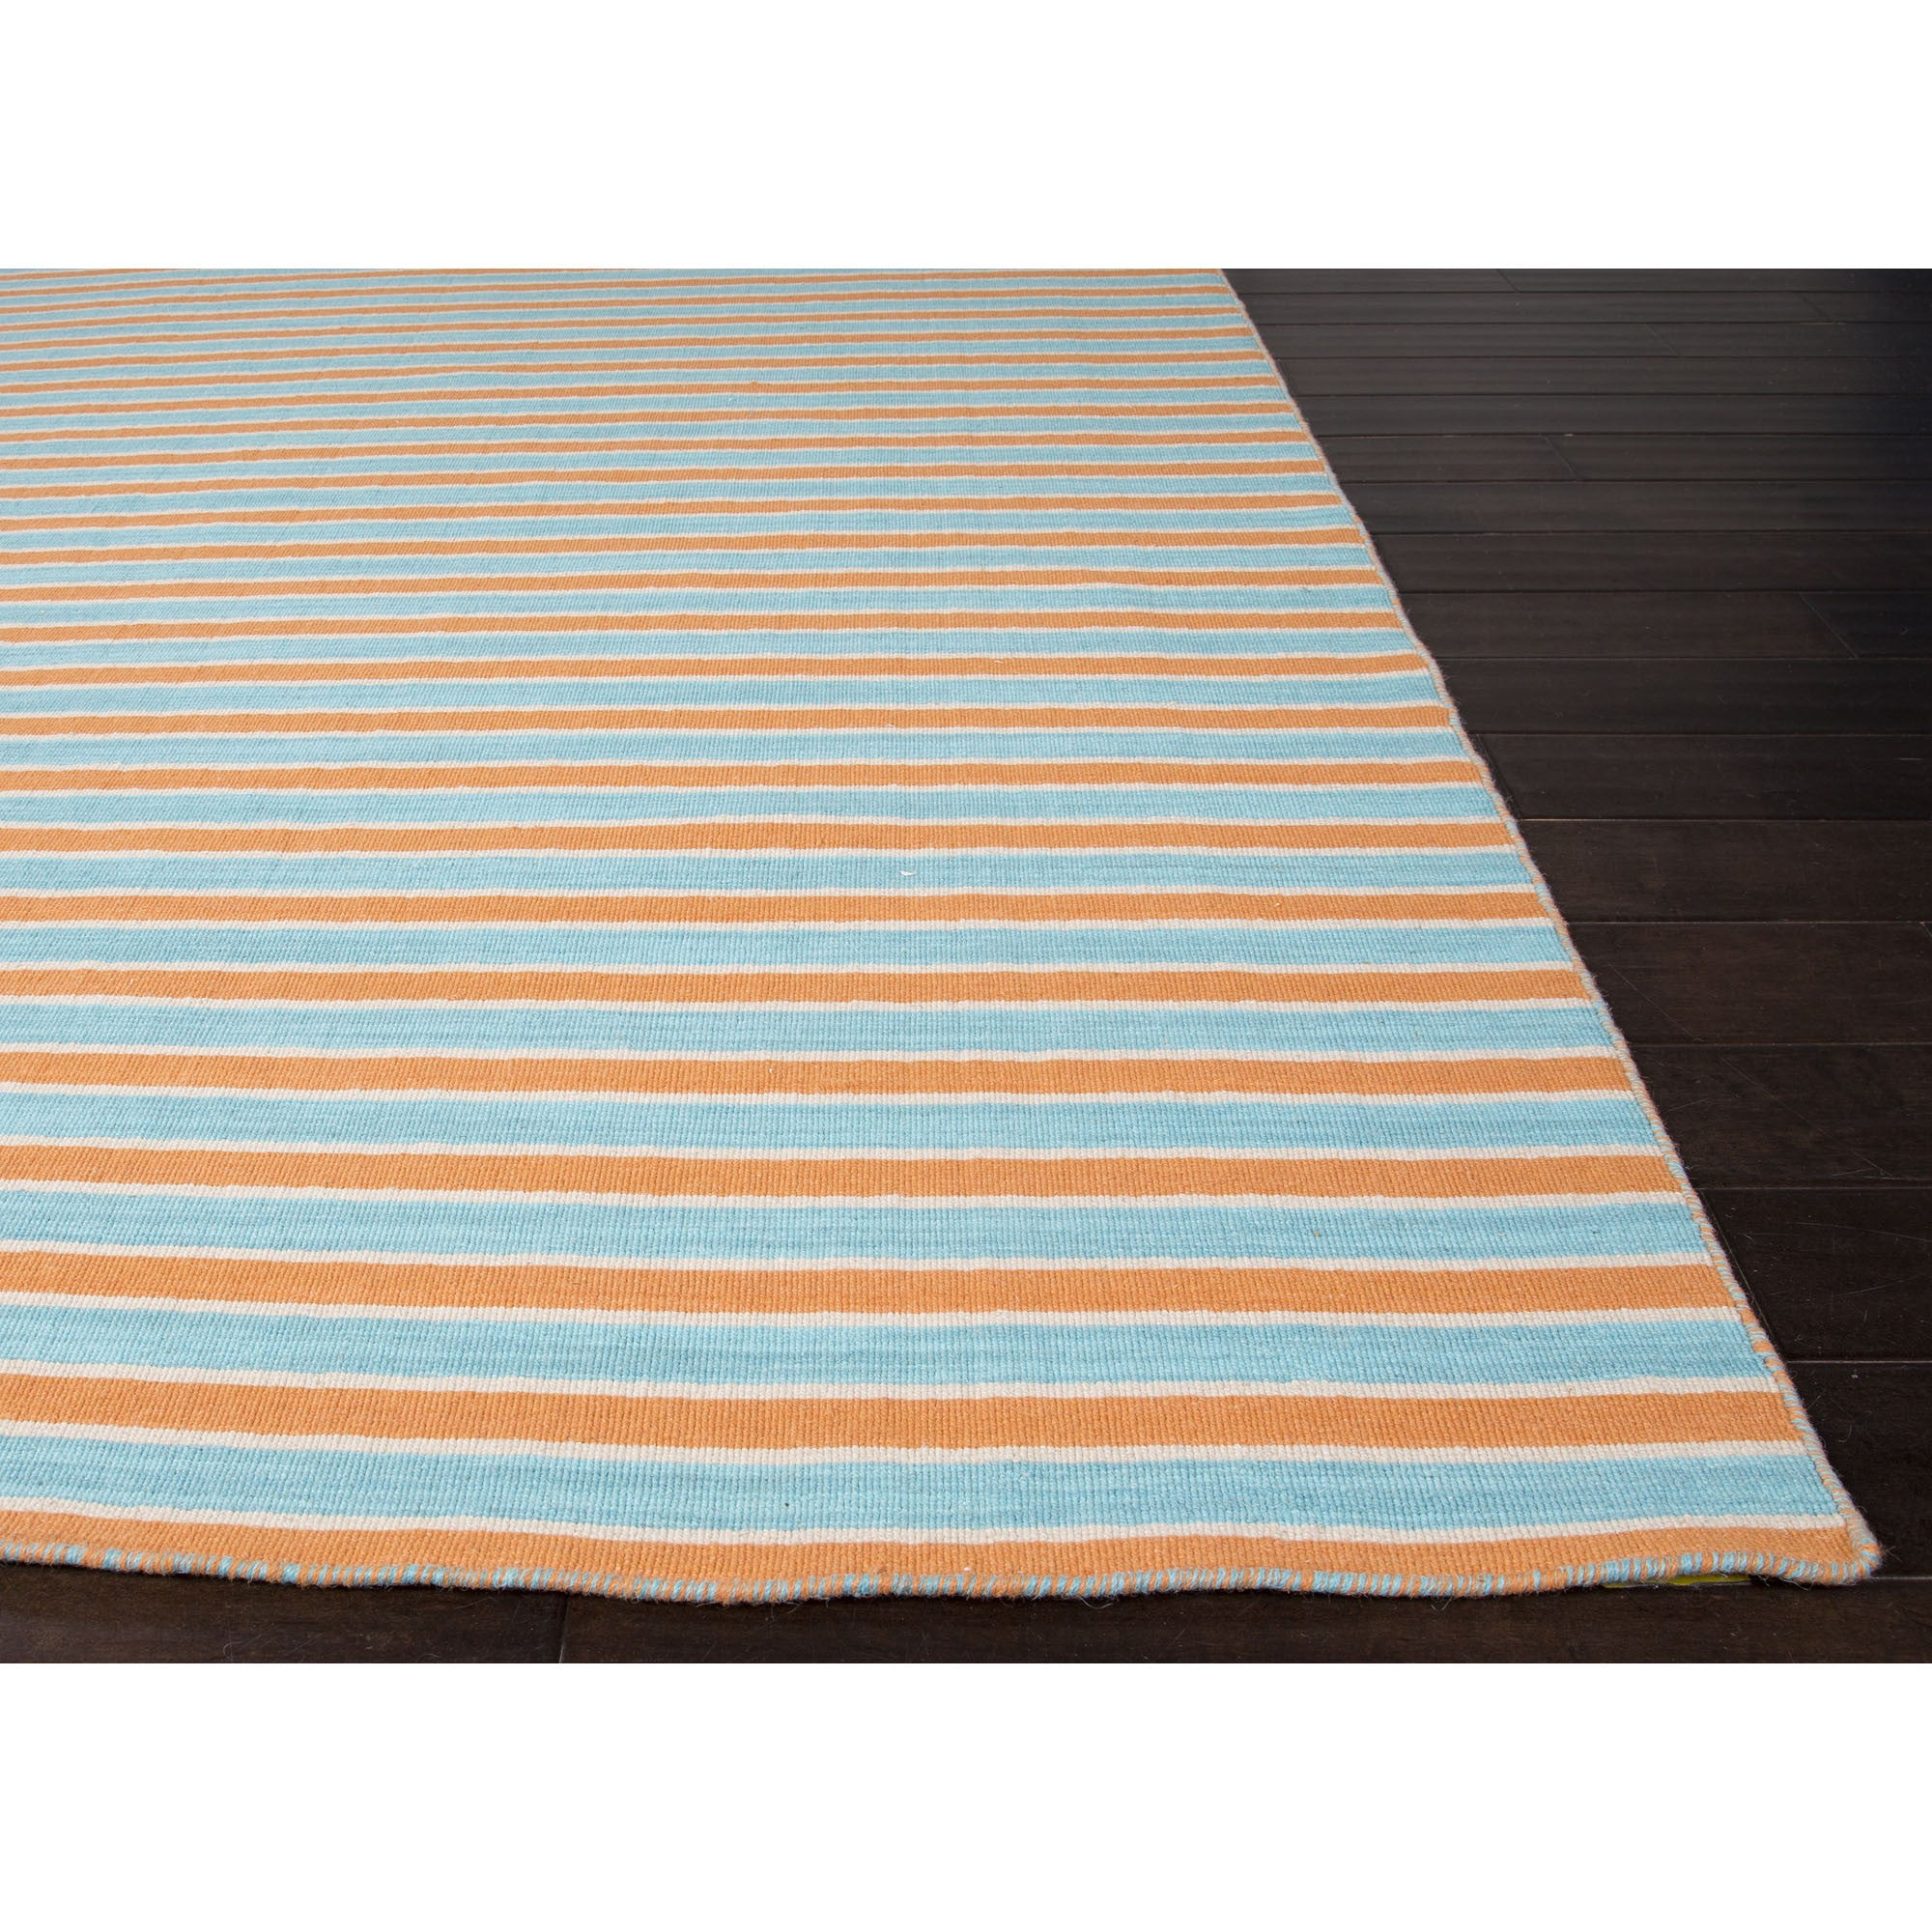 jaipur rugs flatweave stripe pattern orange blue wool area rug pv66 r rugmethod. Black Bedroom Furniture Sets. Home Design Ideas